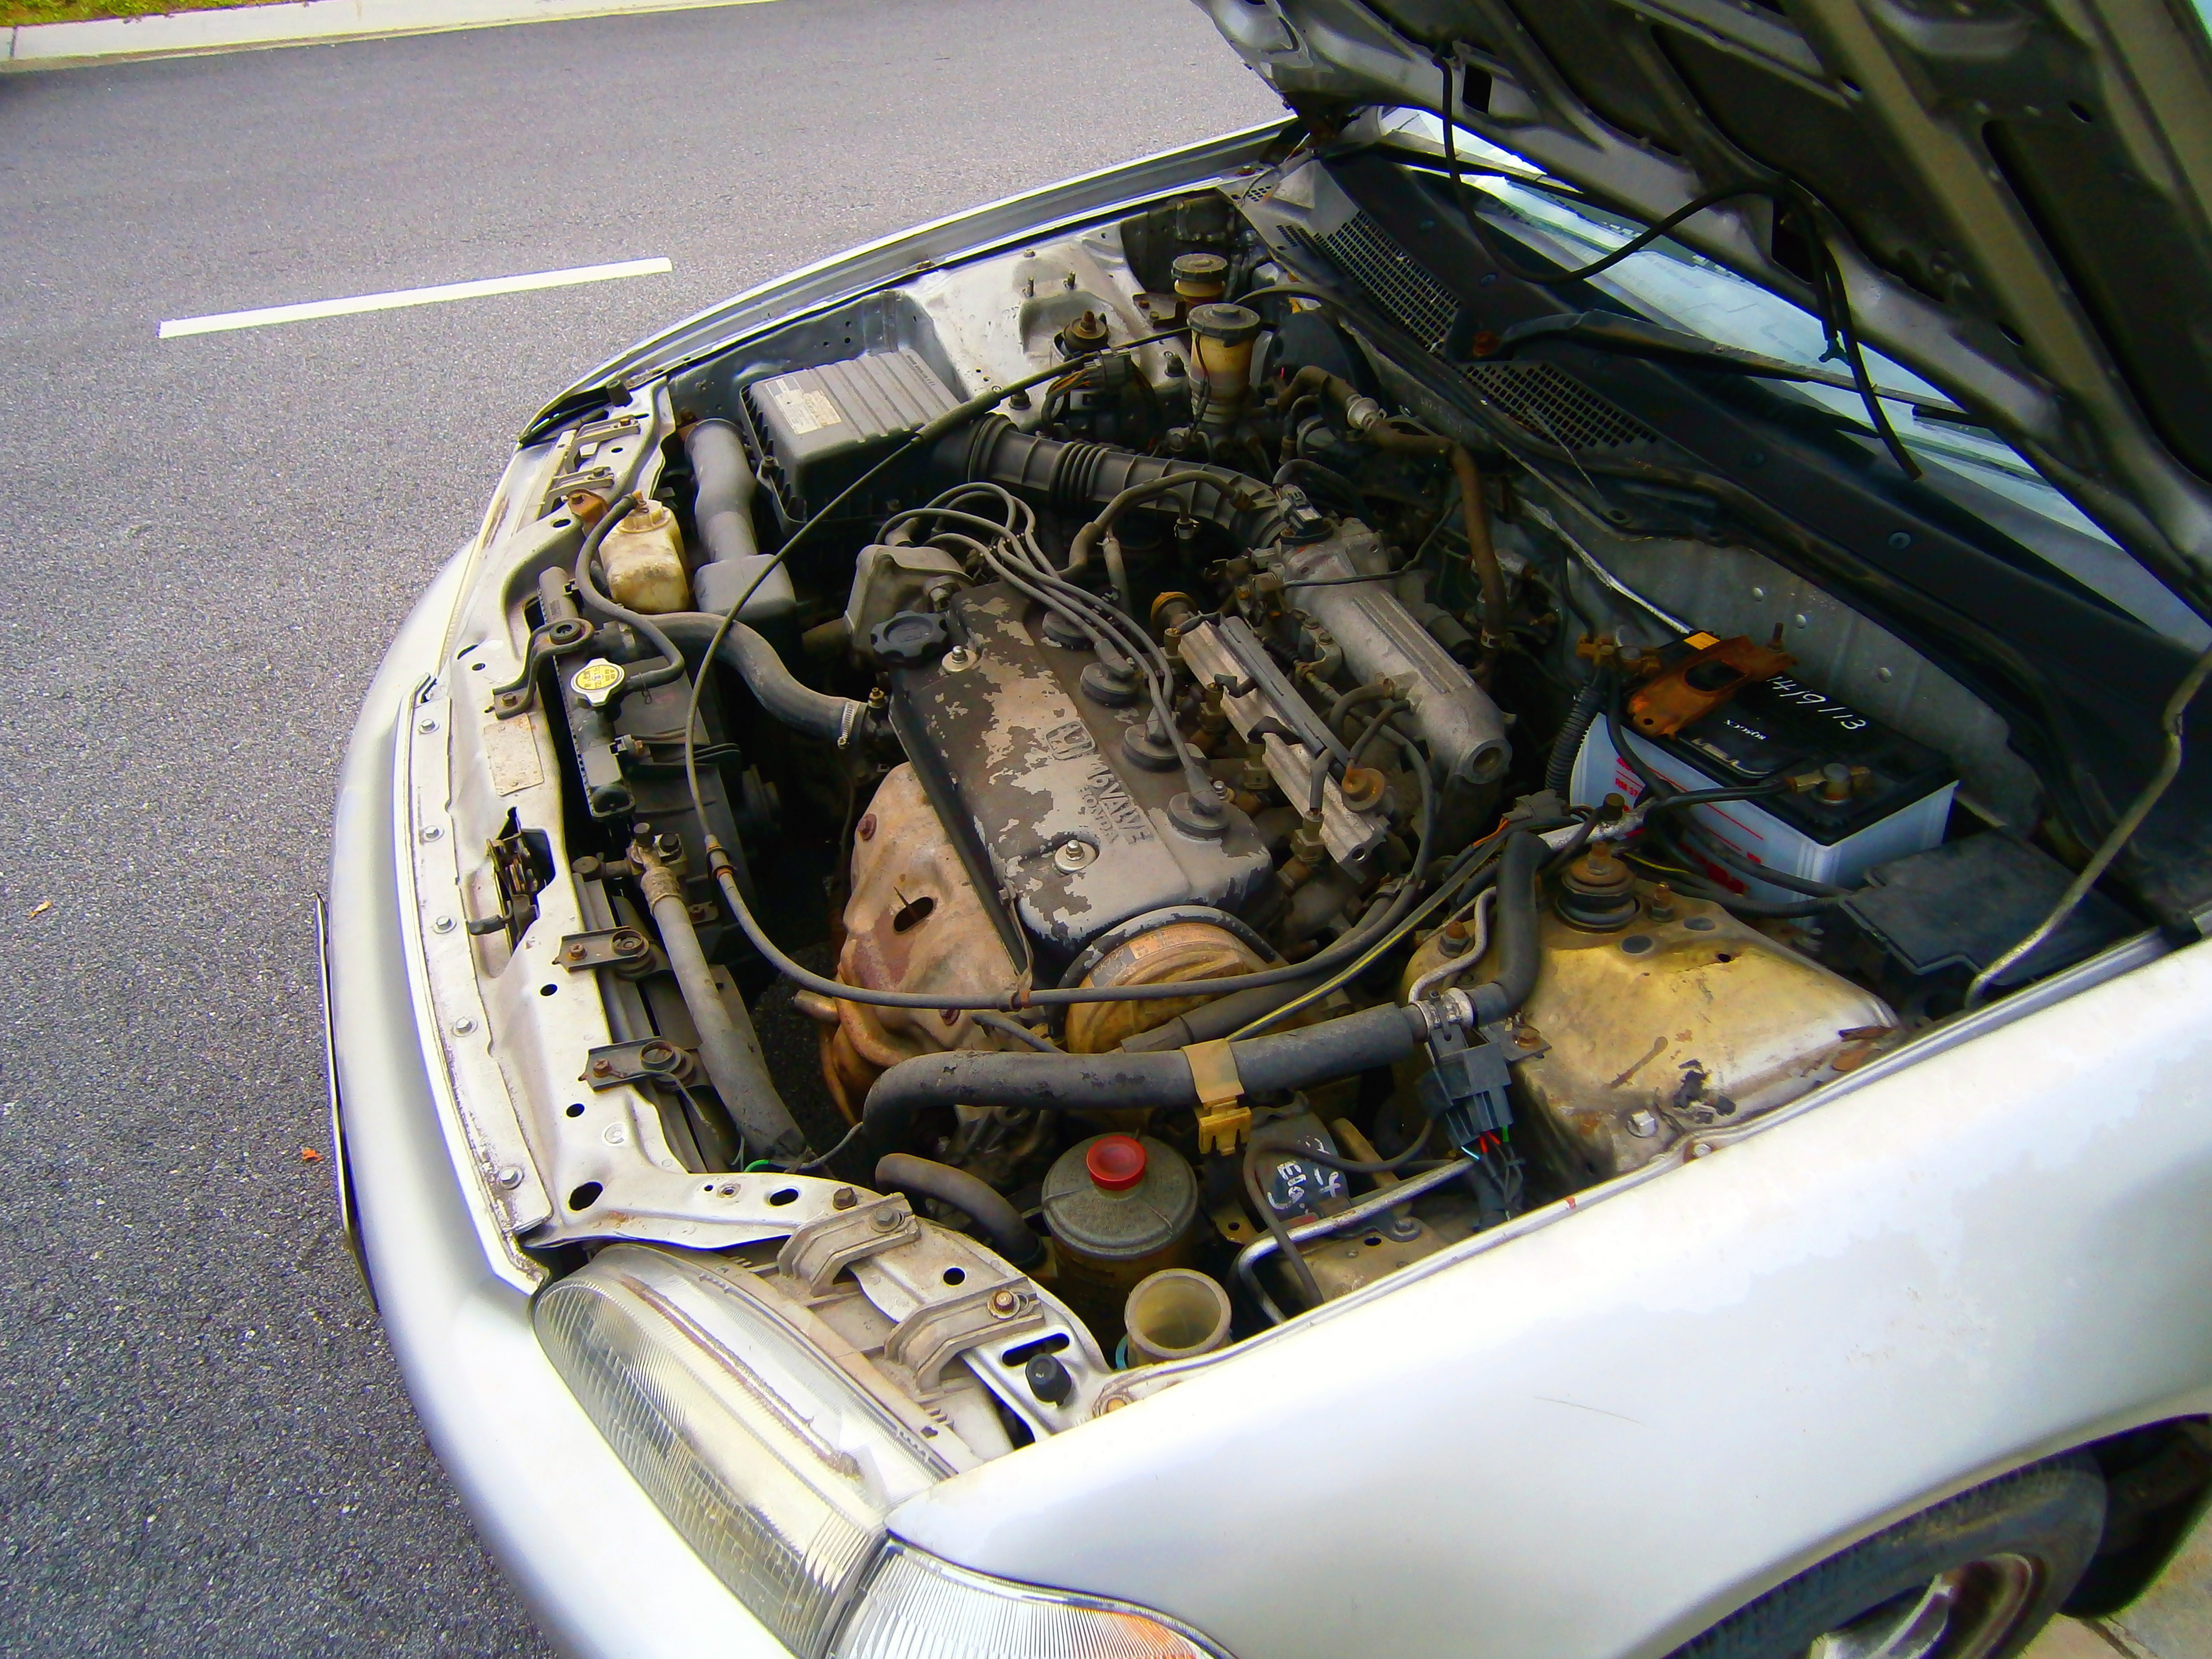 L Honda Vtec Engine In A Honda Civic Eh Saloon In Puchong C Malaysia